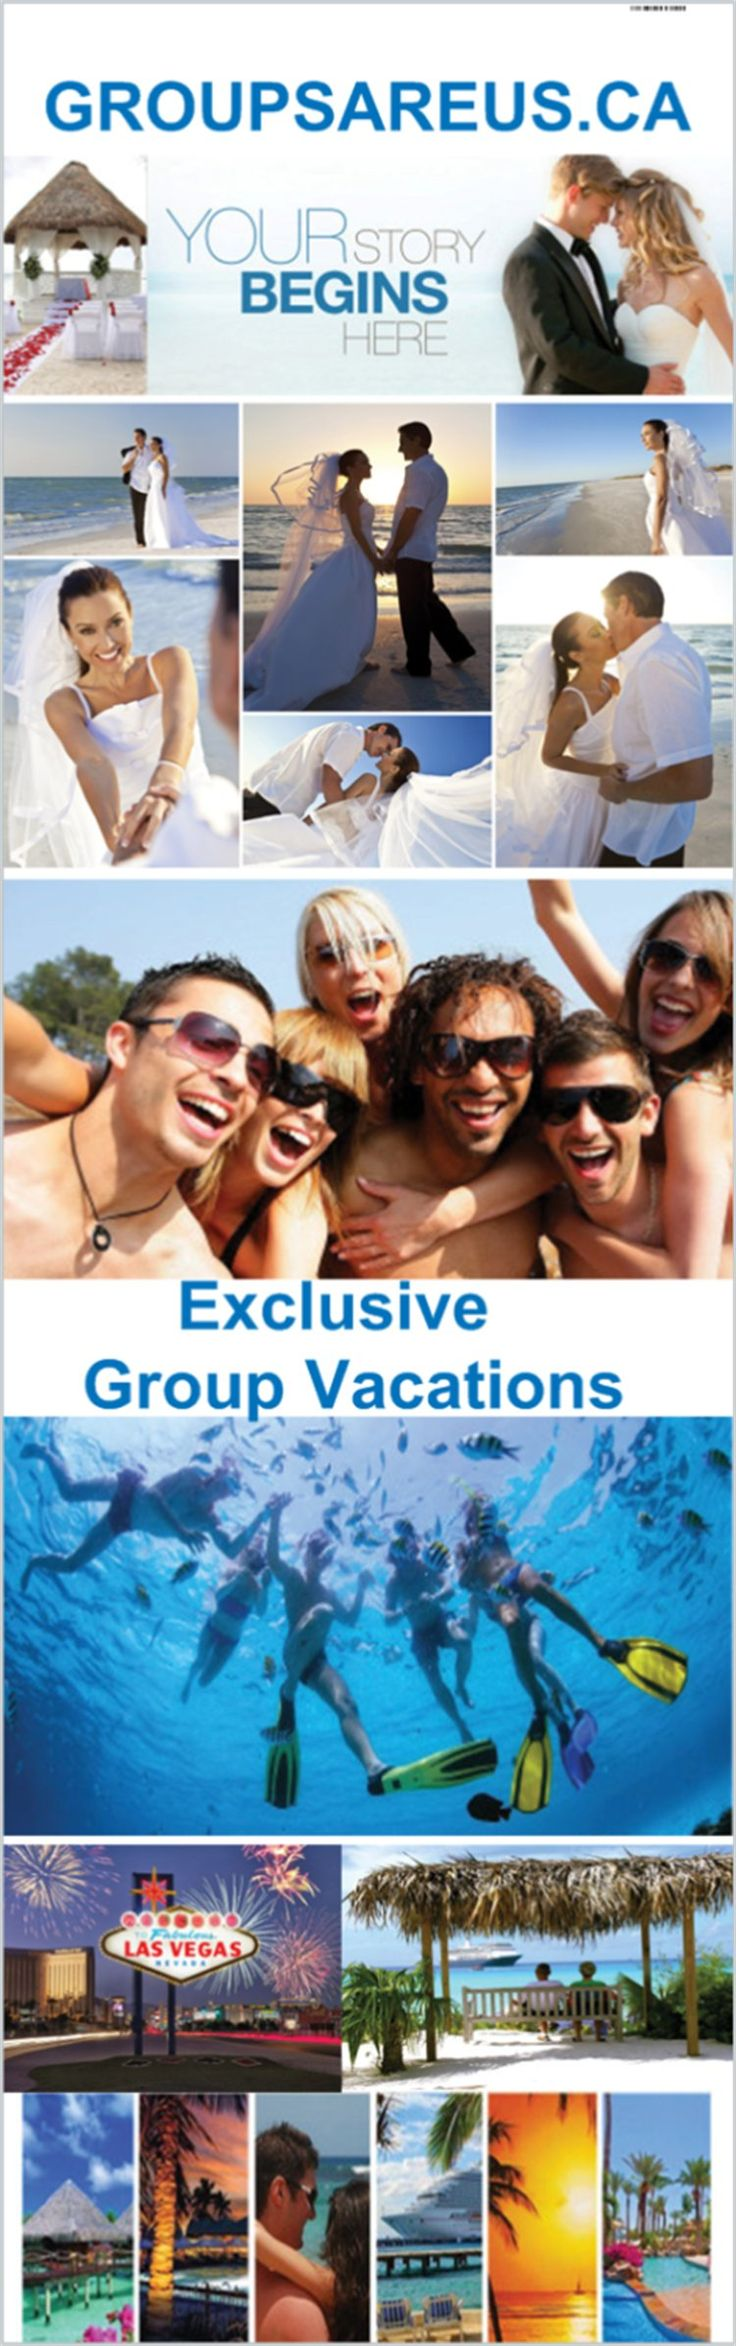 GROUPSAREUS.CA  UPCOMING  GROUP TRIPS PROMOTIONS TRAVEL CLUB INFORMATION